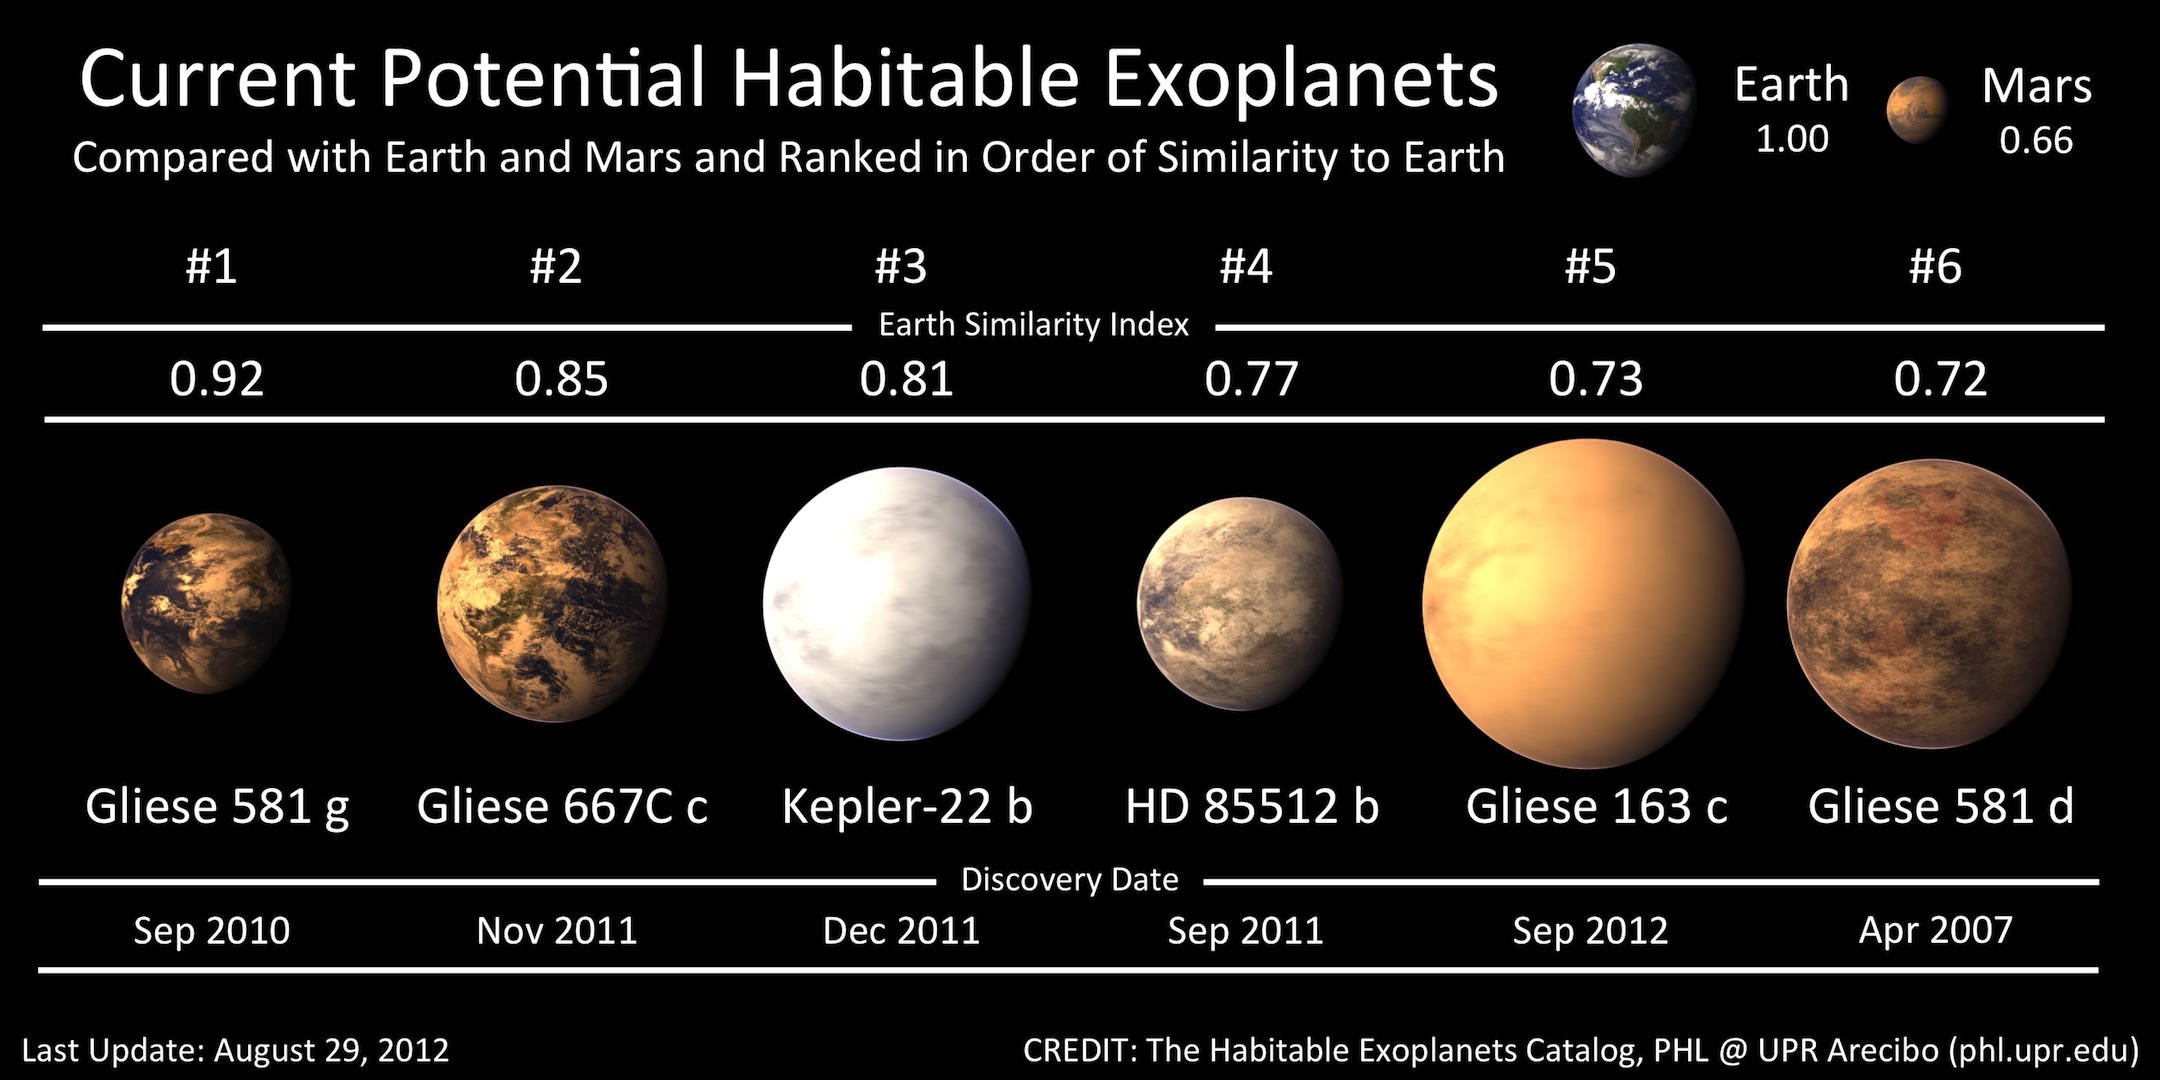 A hot potential habitable exoplanet around Gliese 163